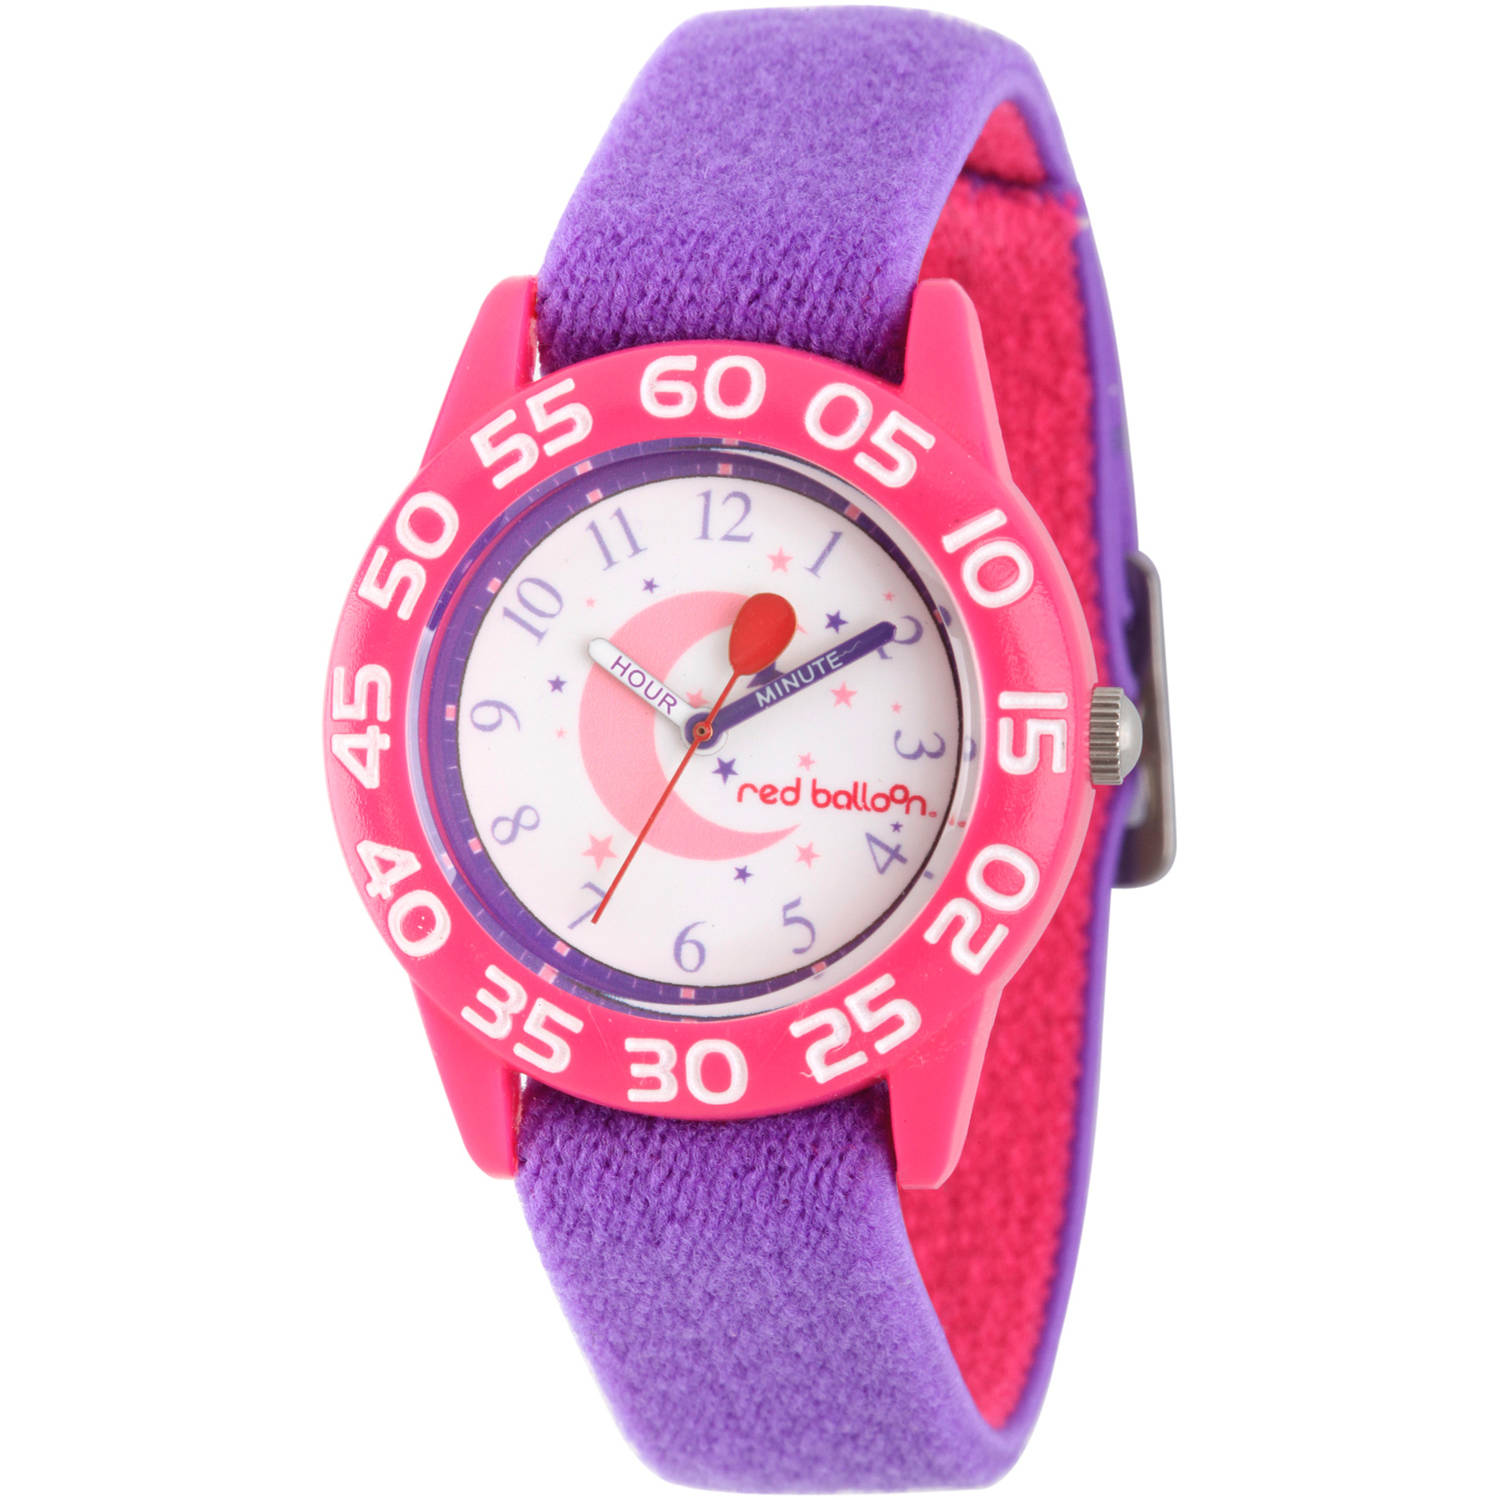 Red Balloon Girls' Pink Plastic Time Teacher Watch, Reversible Purple and Pink Elastic Nylon Strap